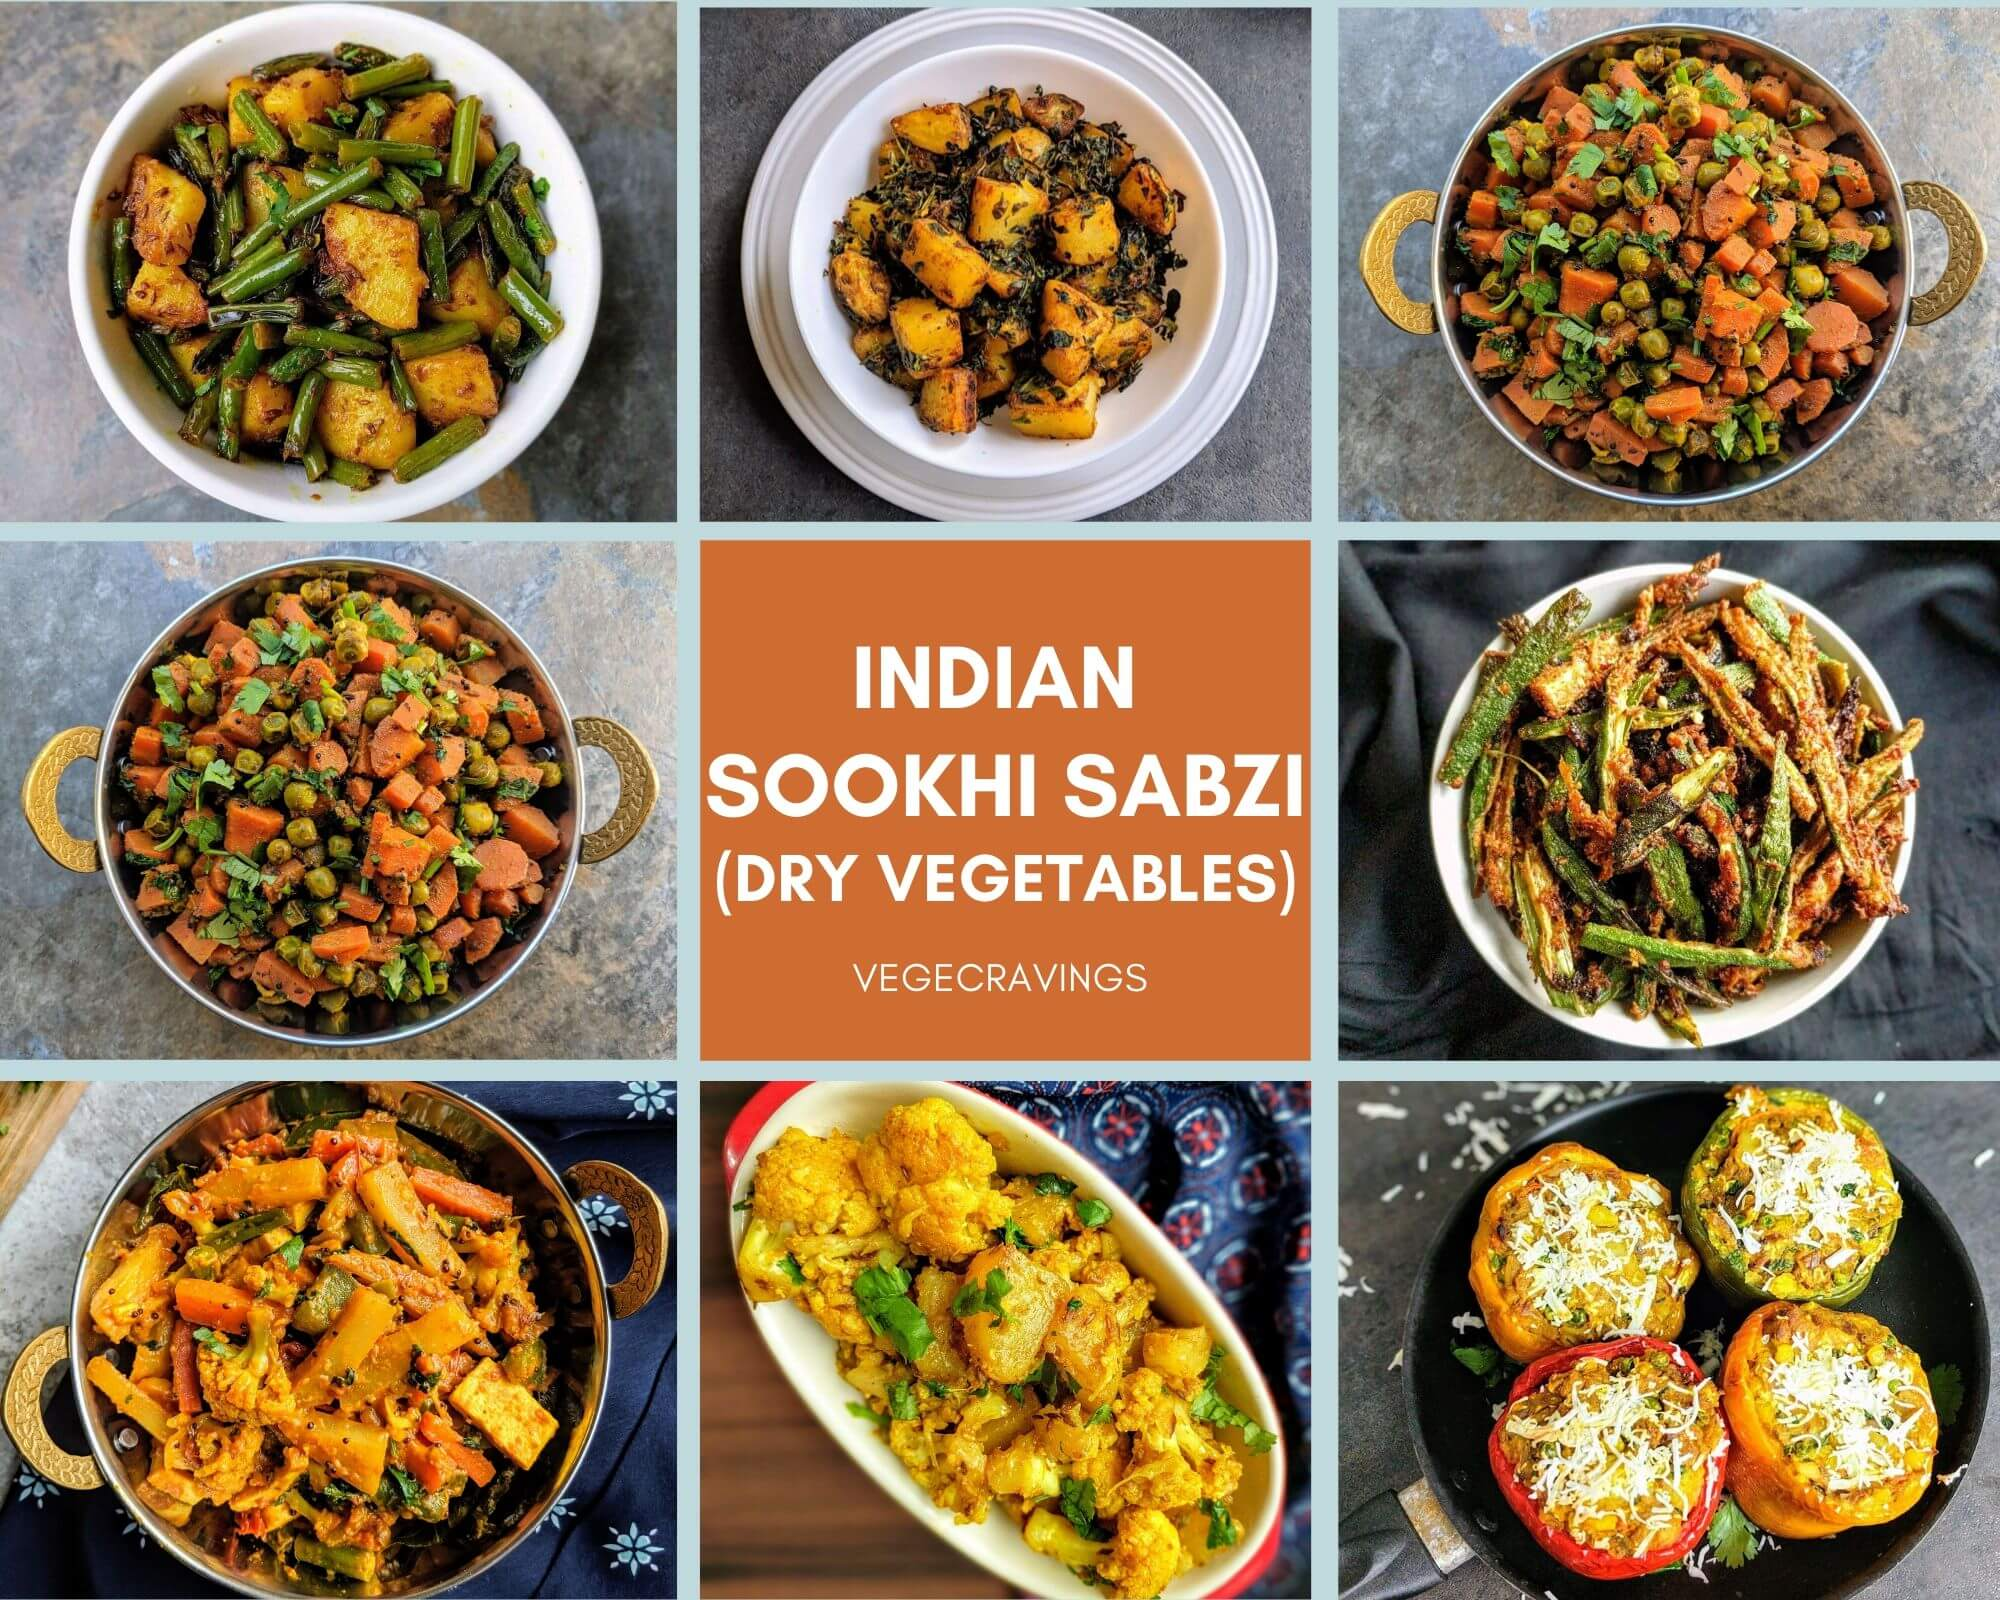 Indian sabzi recipes are dry vegetables curries usually prepared without a gravy and are generally enjoyed along with Indian breads or rice.